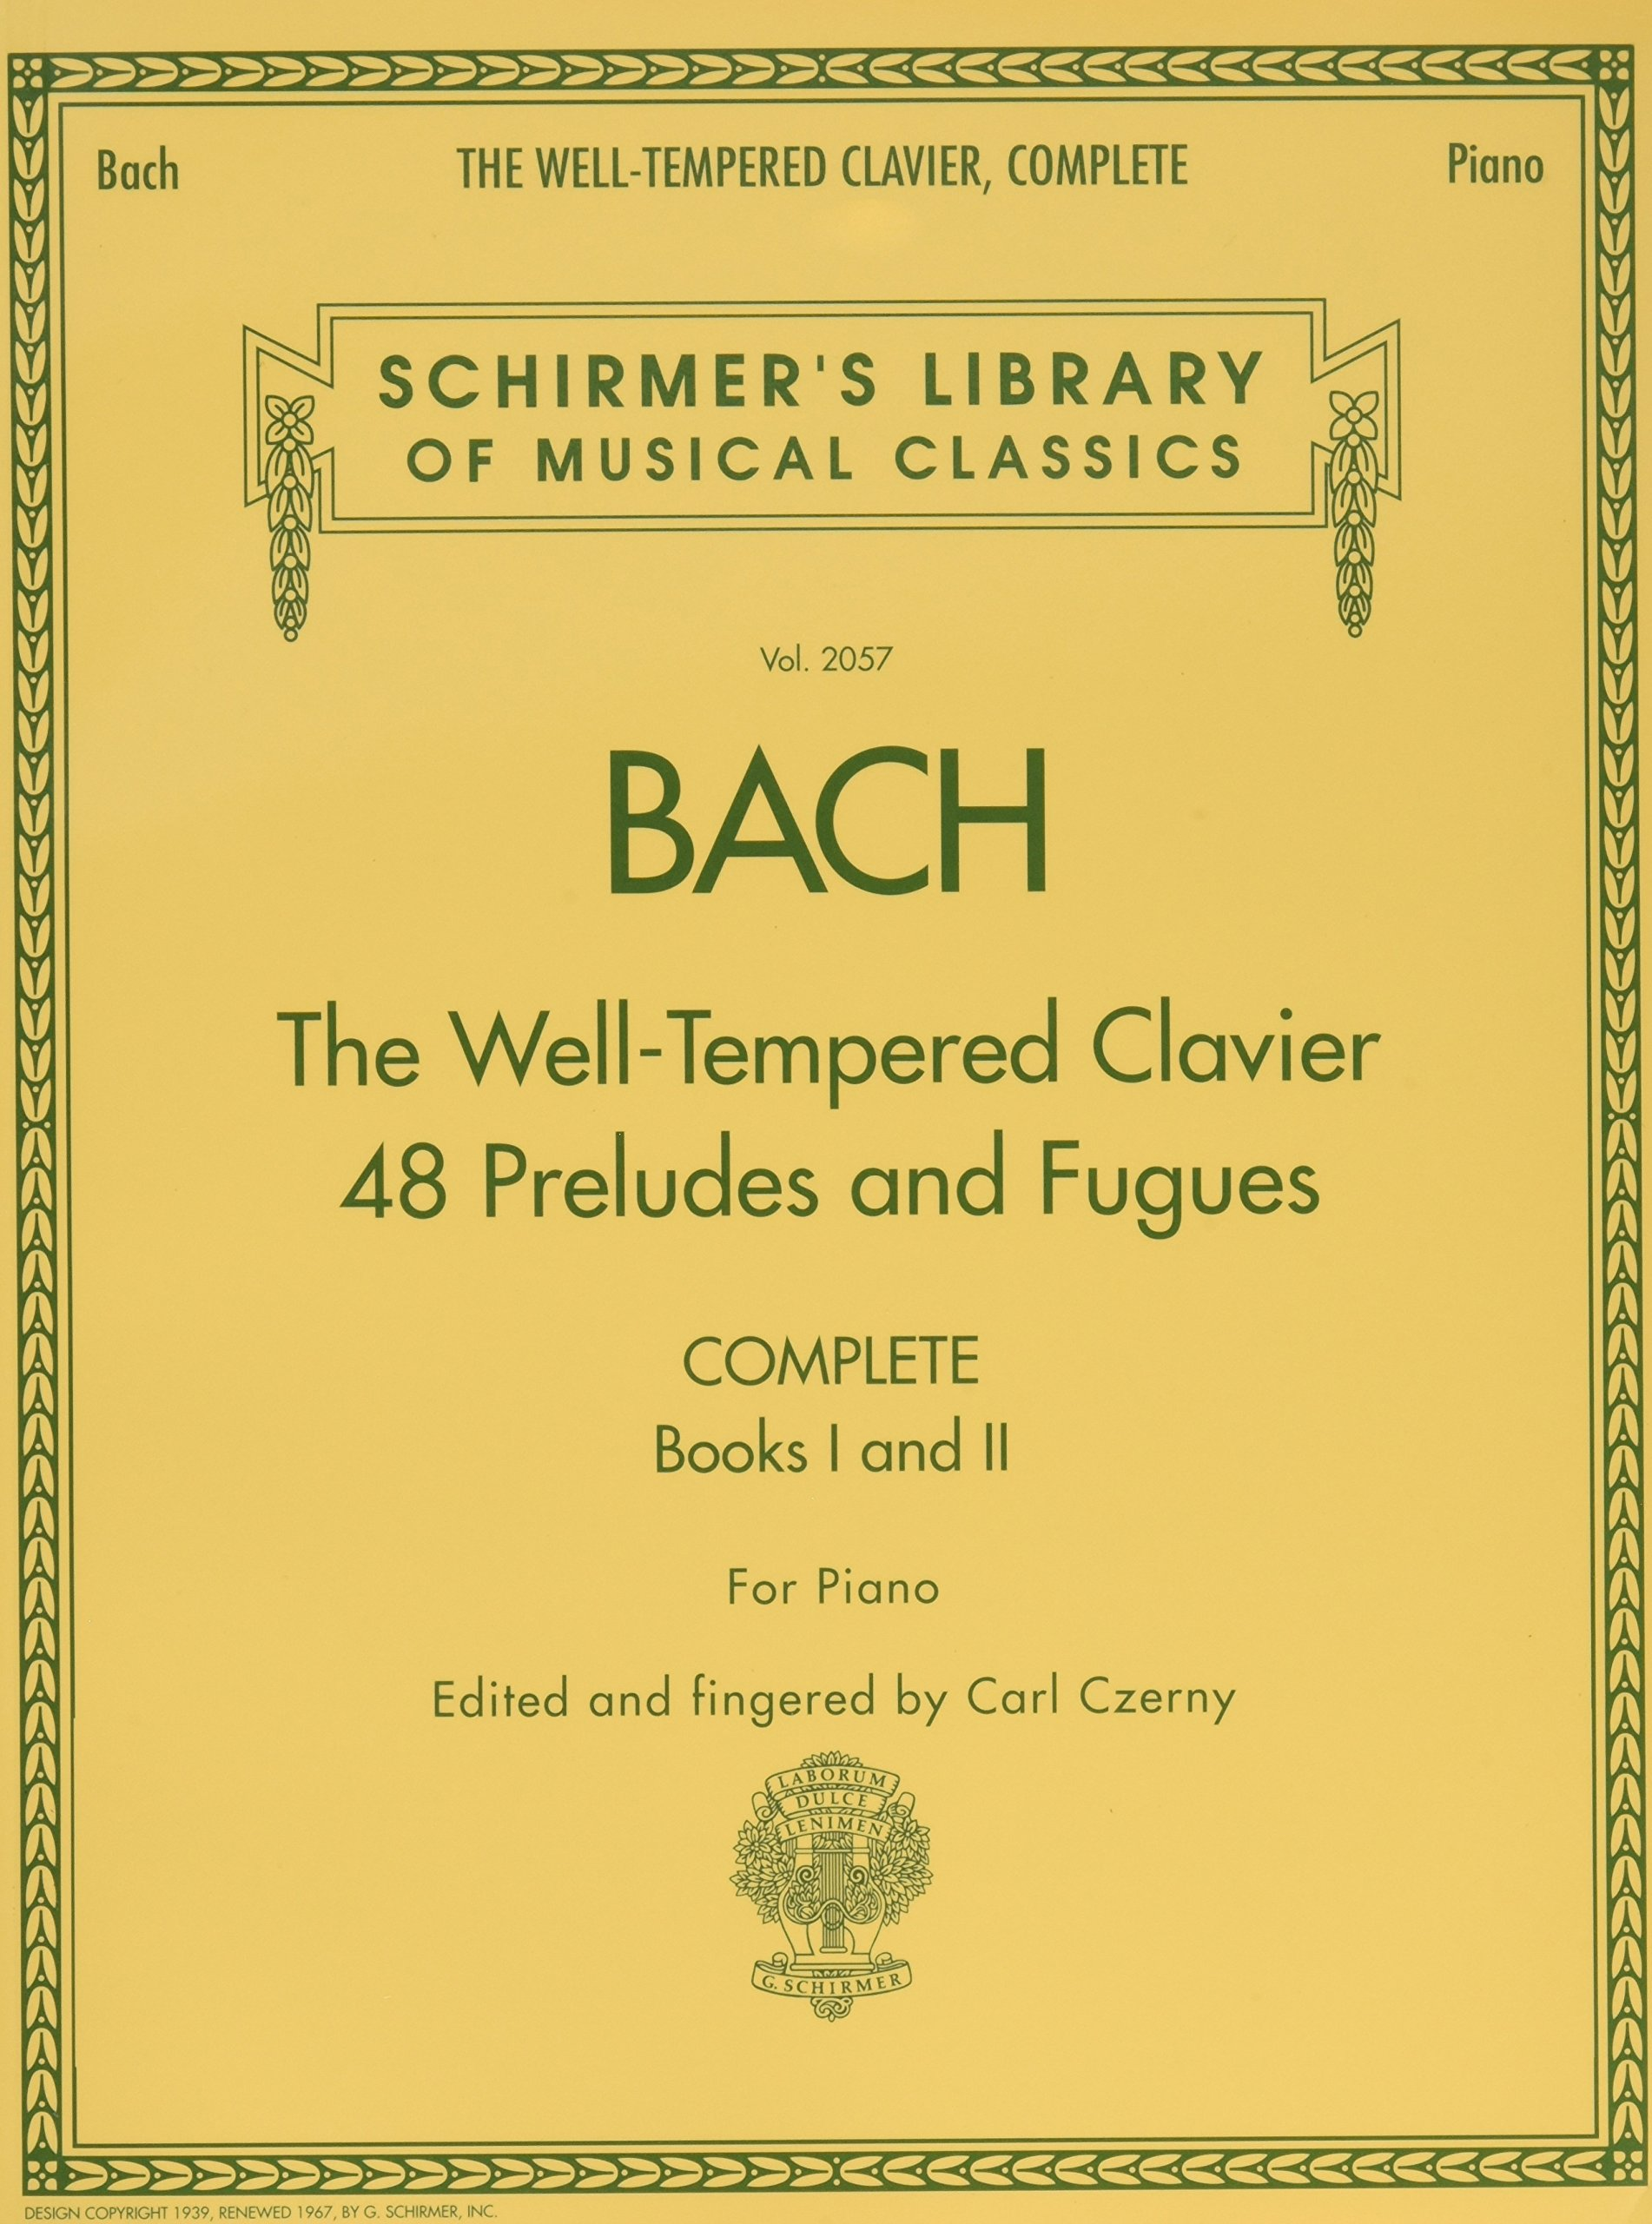 Download The Well-Tempered Clavier, Complete: Schirmer Library of Musical Classics, Volume 2057 (Schirmer's Library of Musical Classics) PDF